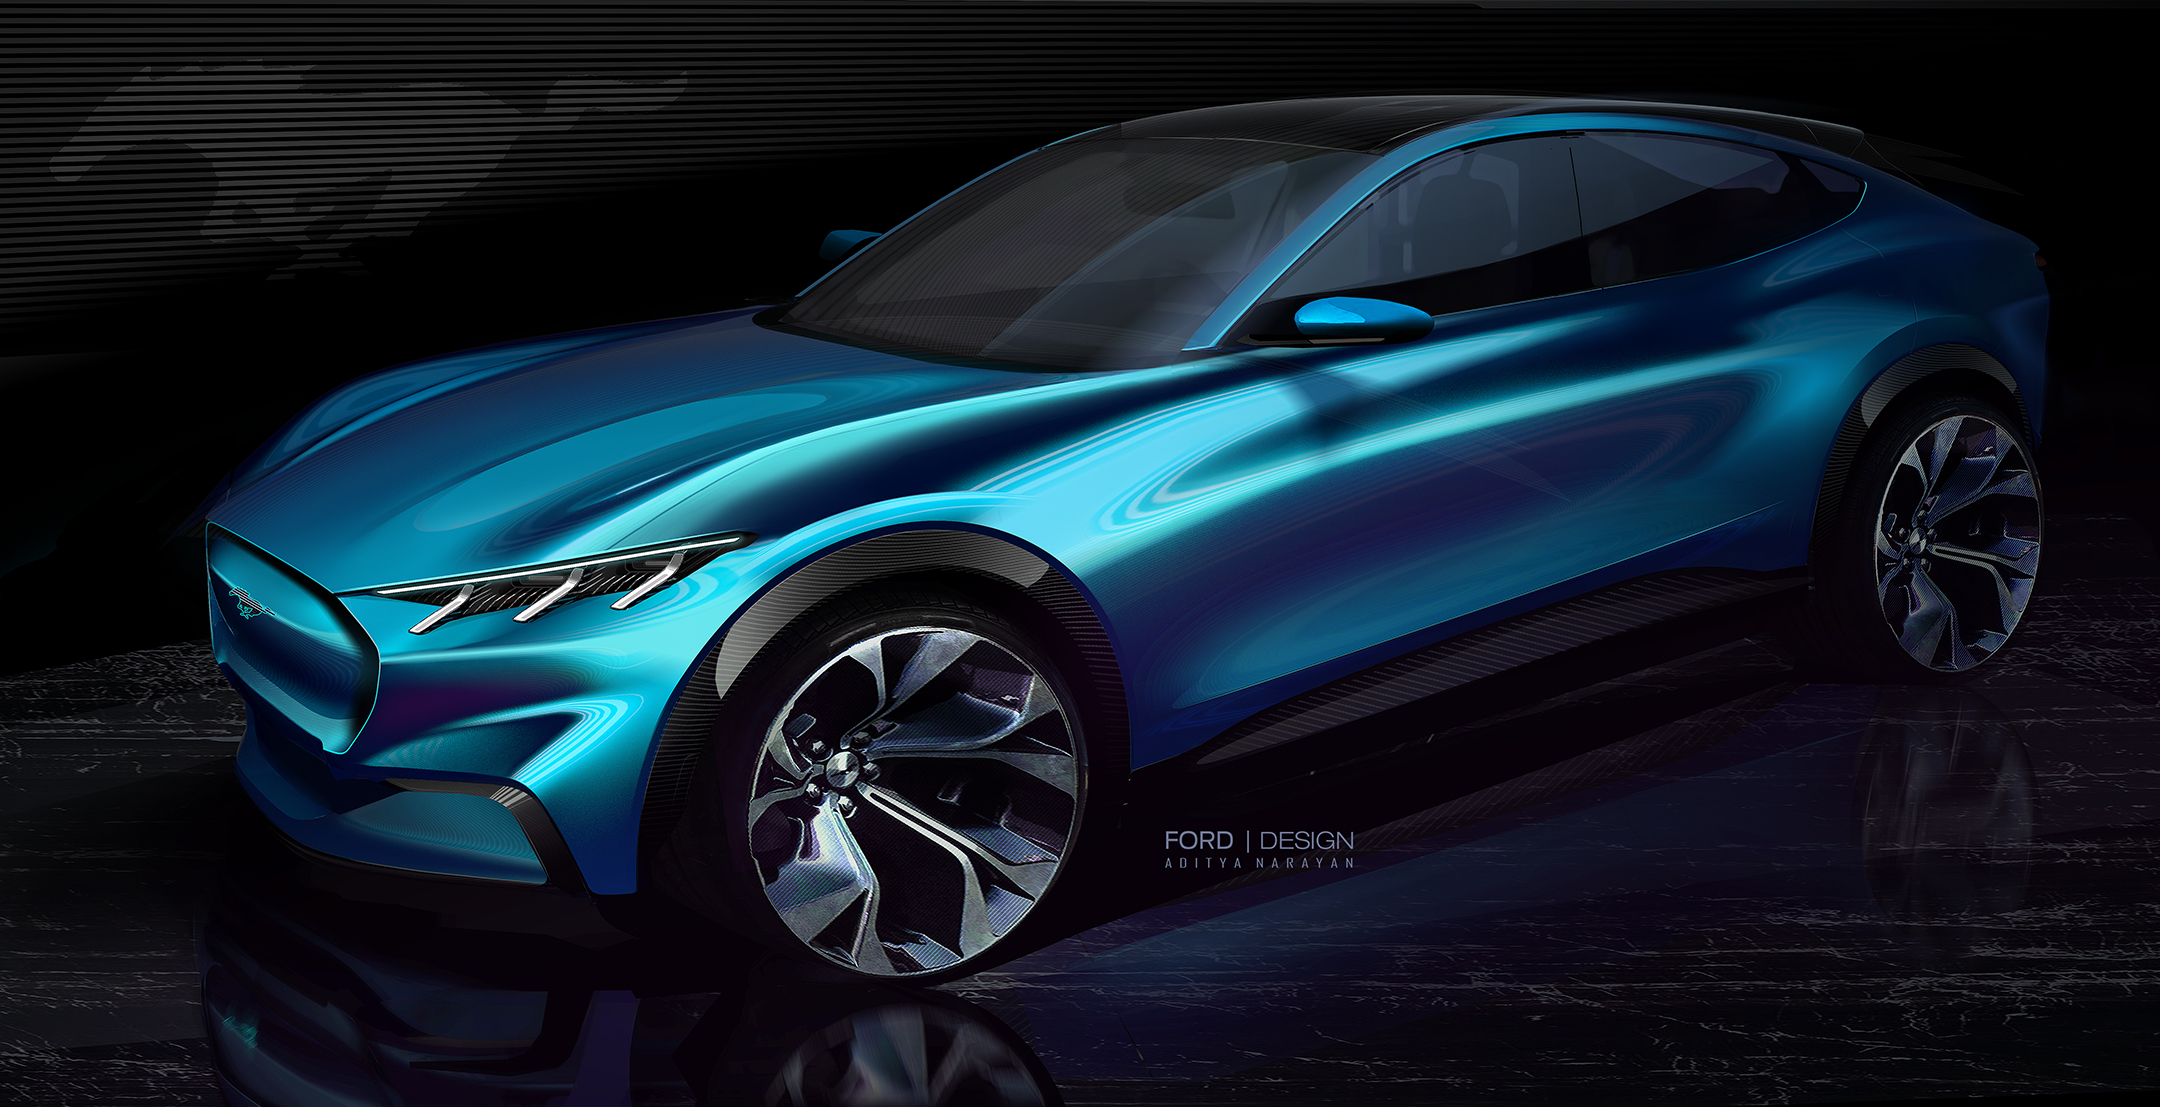 Ford Mustang Mach-E - 2019 - design sketch - front side-face / profil